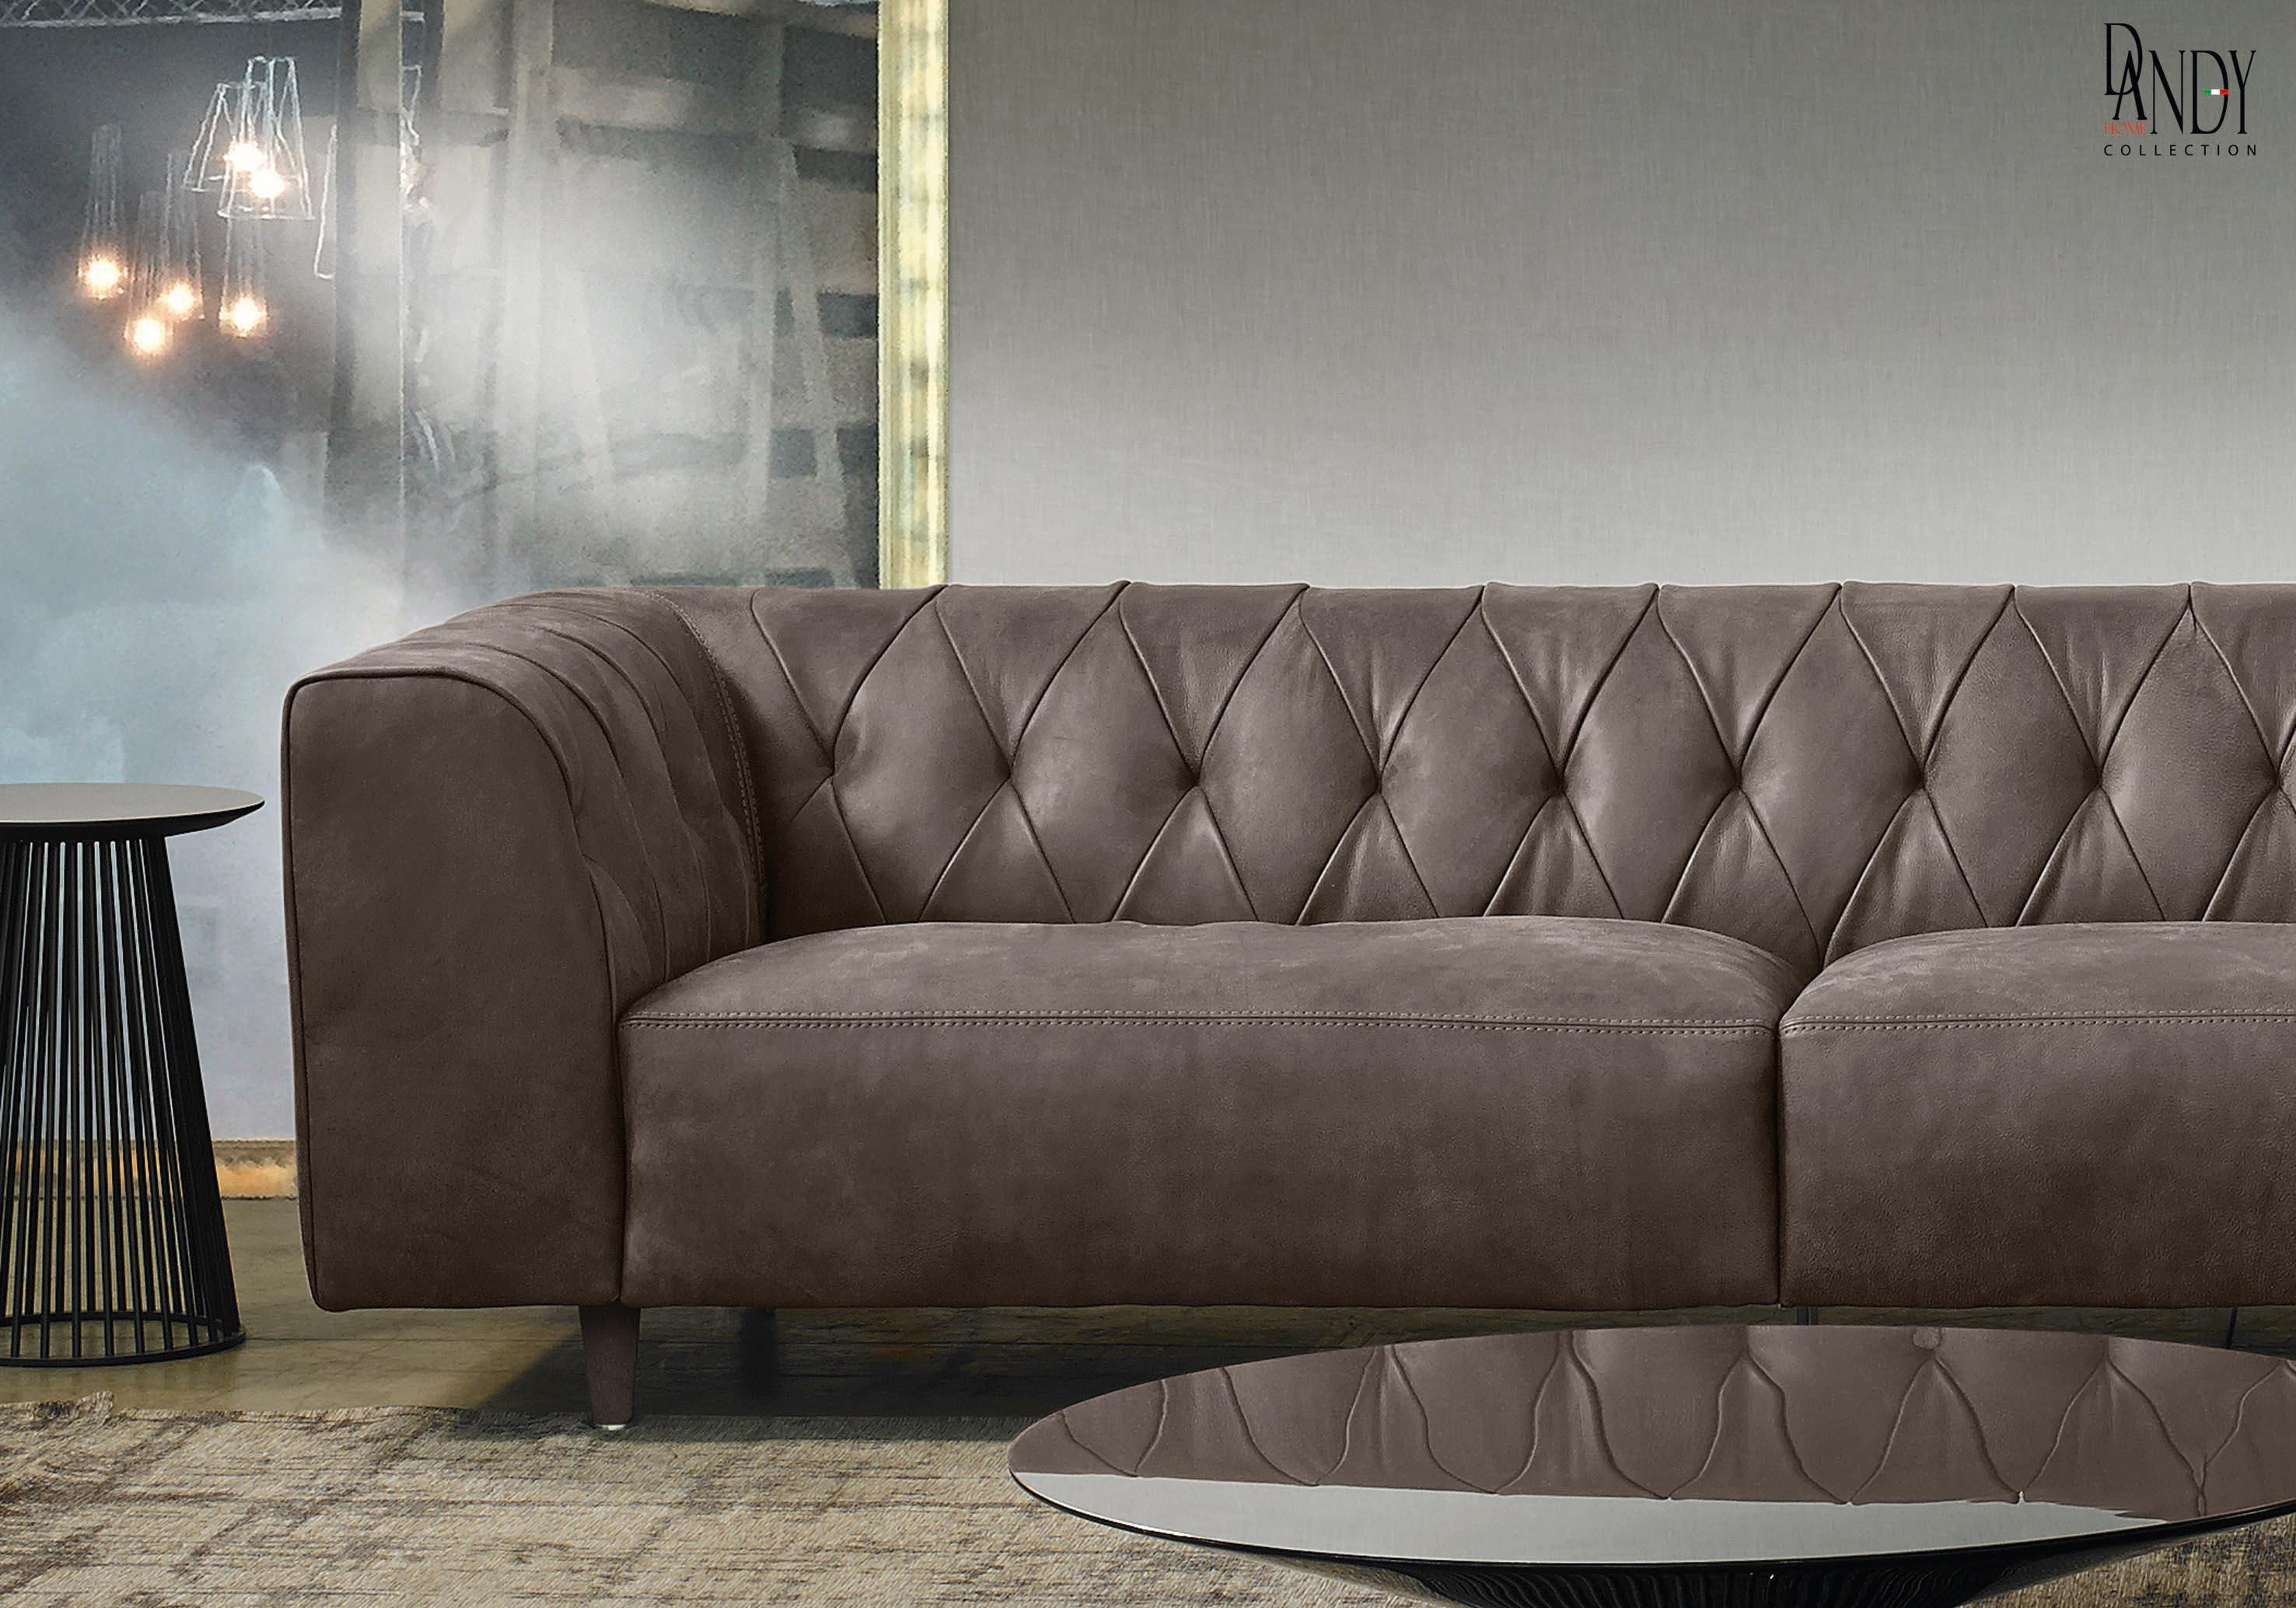 Cantoni Sofa 65 With Cantoni Sofa | Jinanhongyu Regarding Cantoni Sofas (Image 8 of 20)